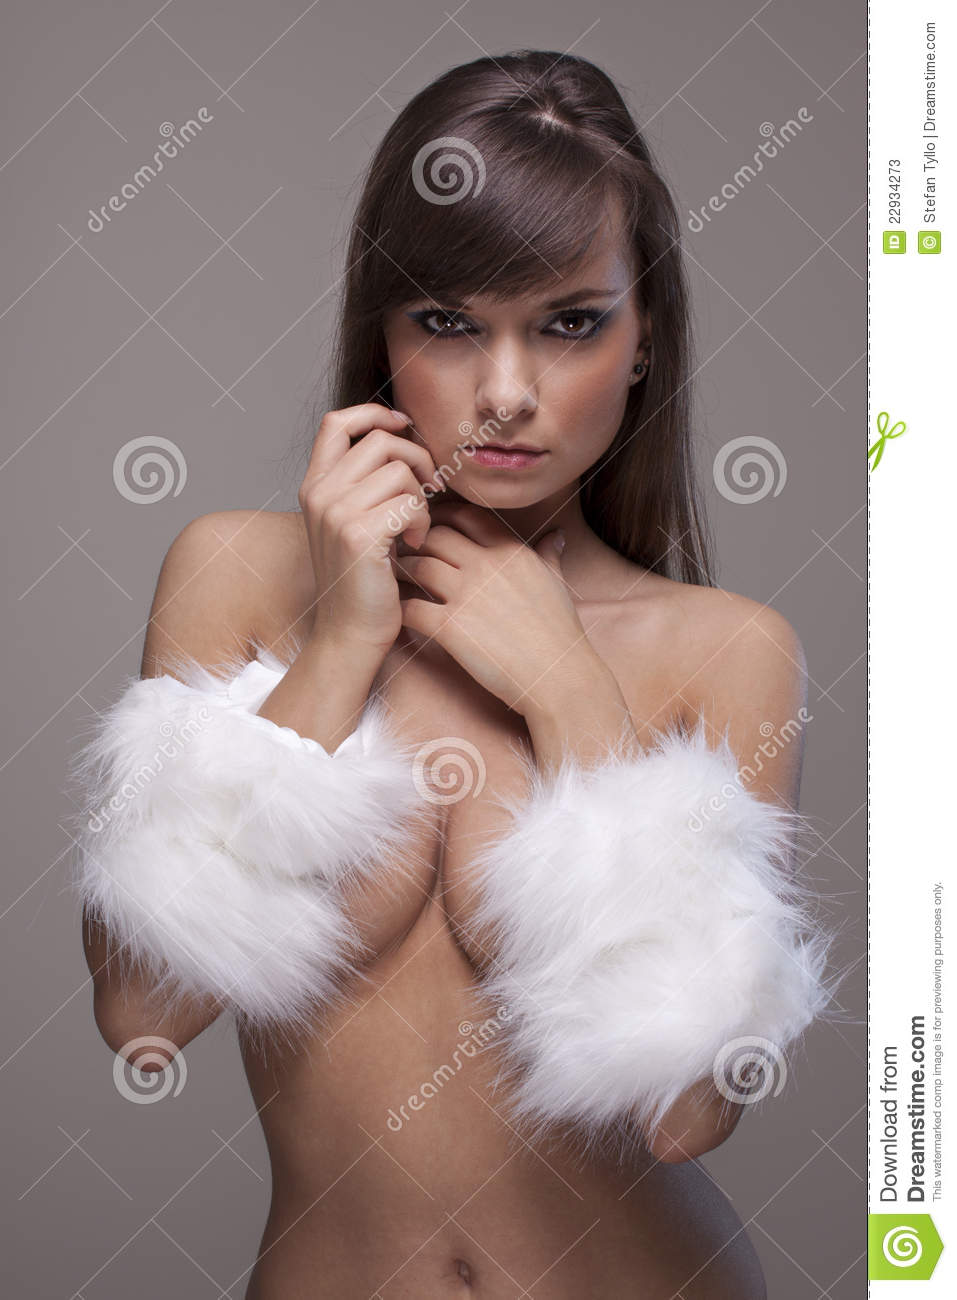 Women in fur nude delirium absolutely